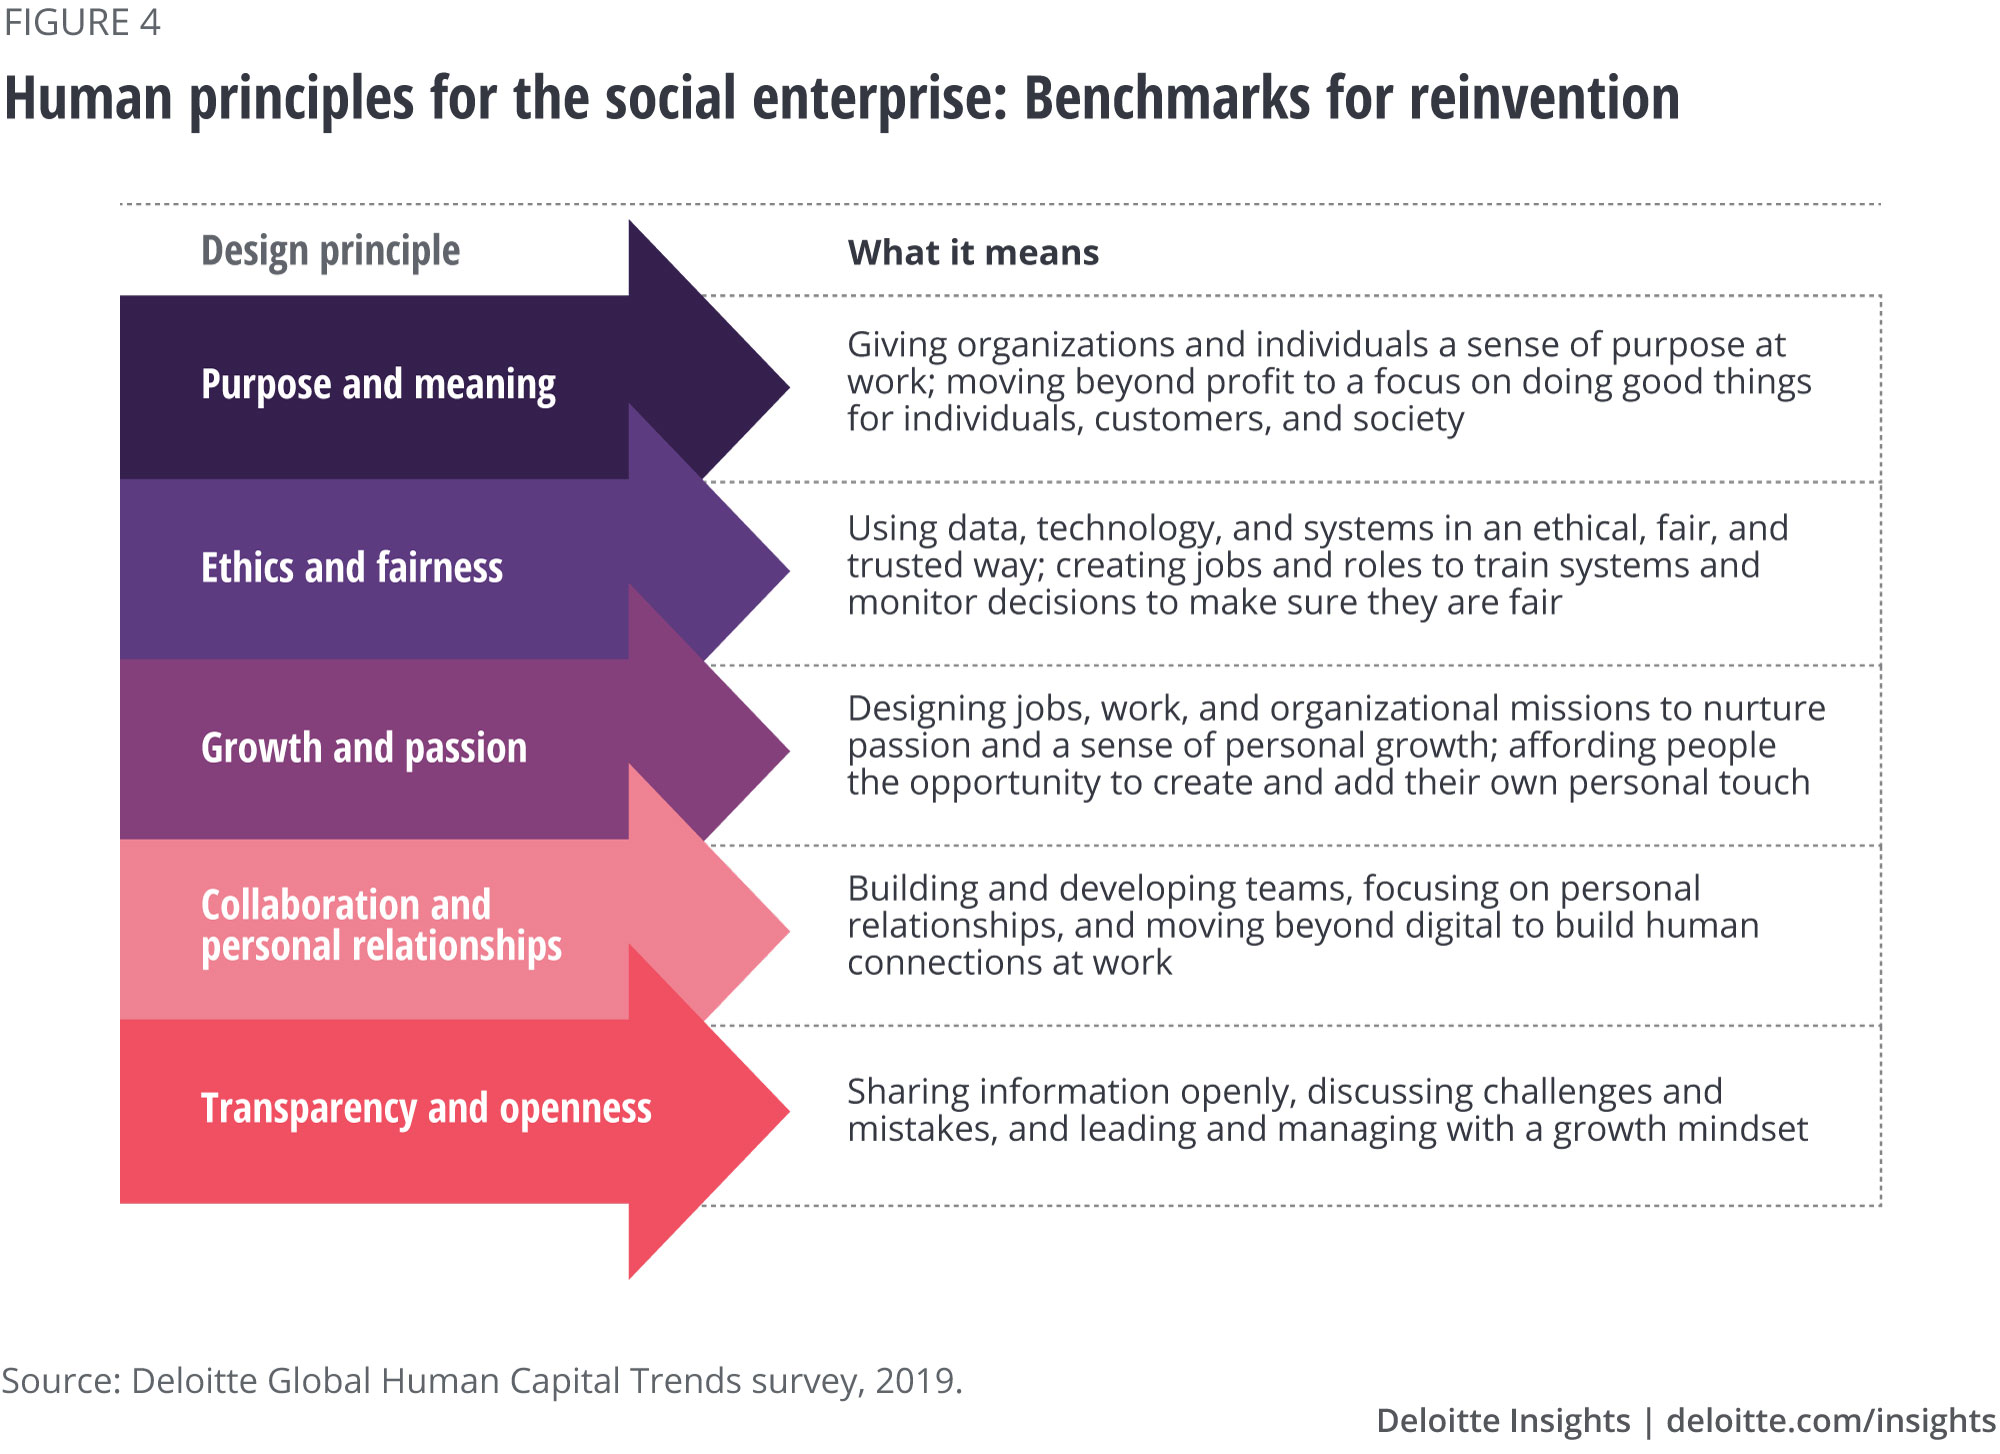 Human principles for the social enterprise: Benchmarks for reinvention